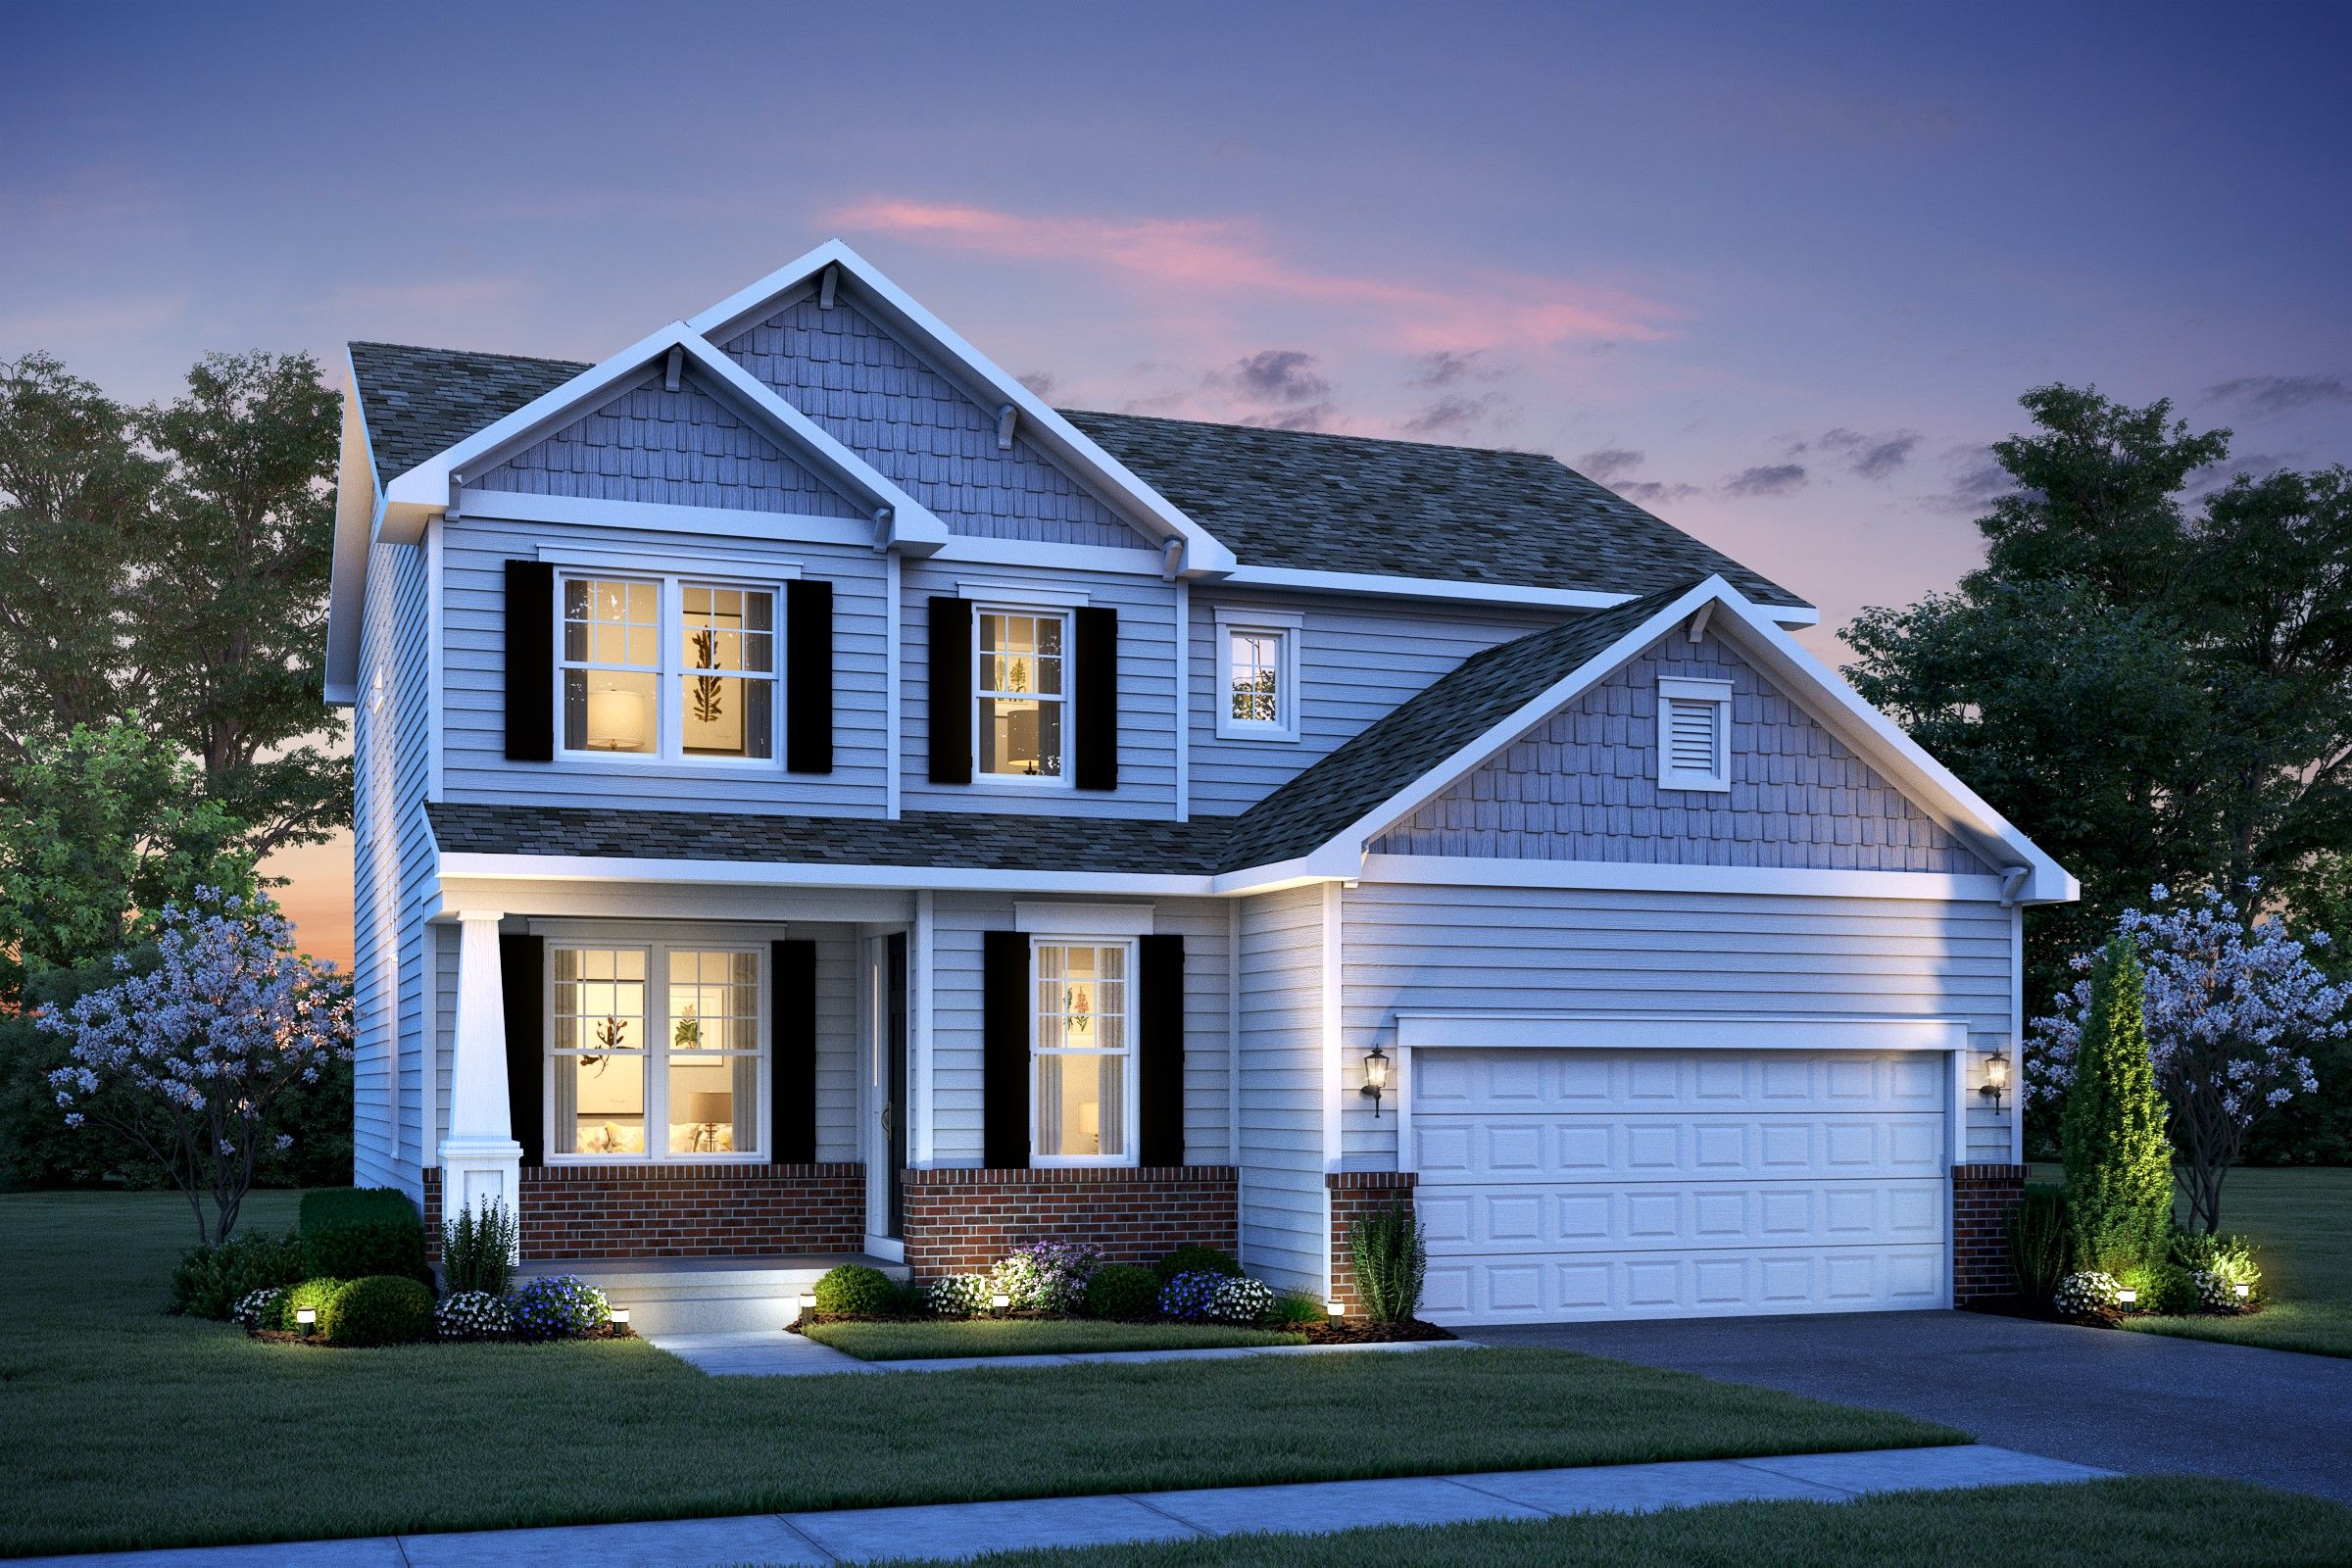 Single Family for Active at Meadow Brook At Hillsborough - Haddenfield Ii Passe Court Hillsborough, New Jersey 08844 United States